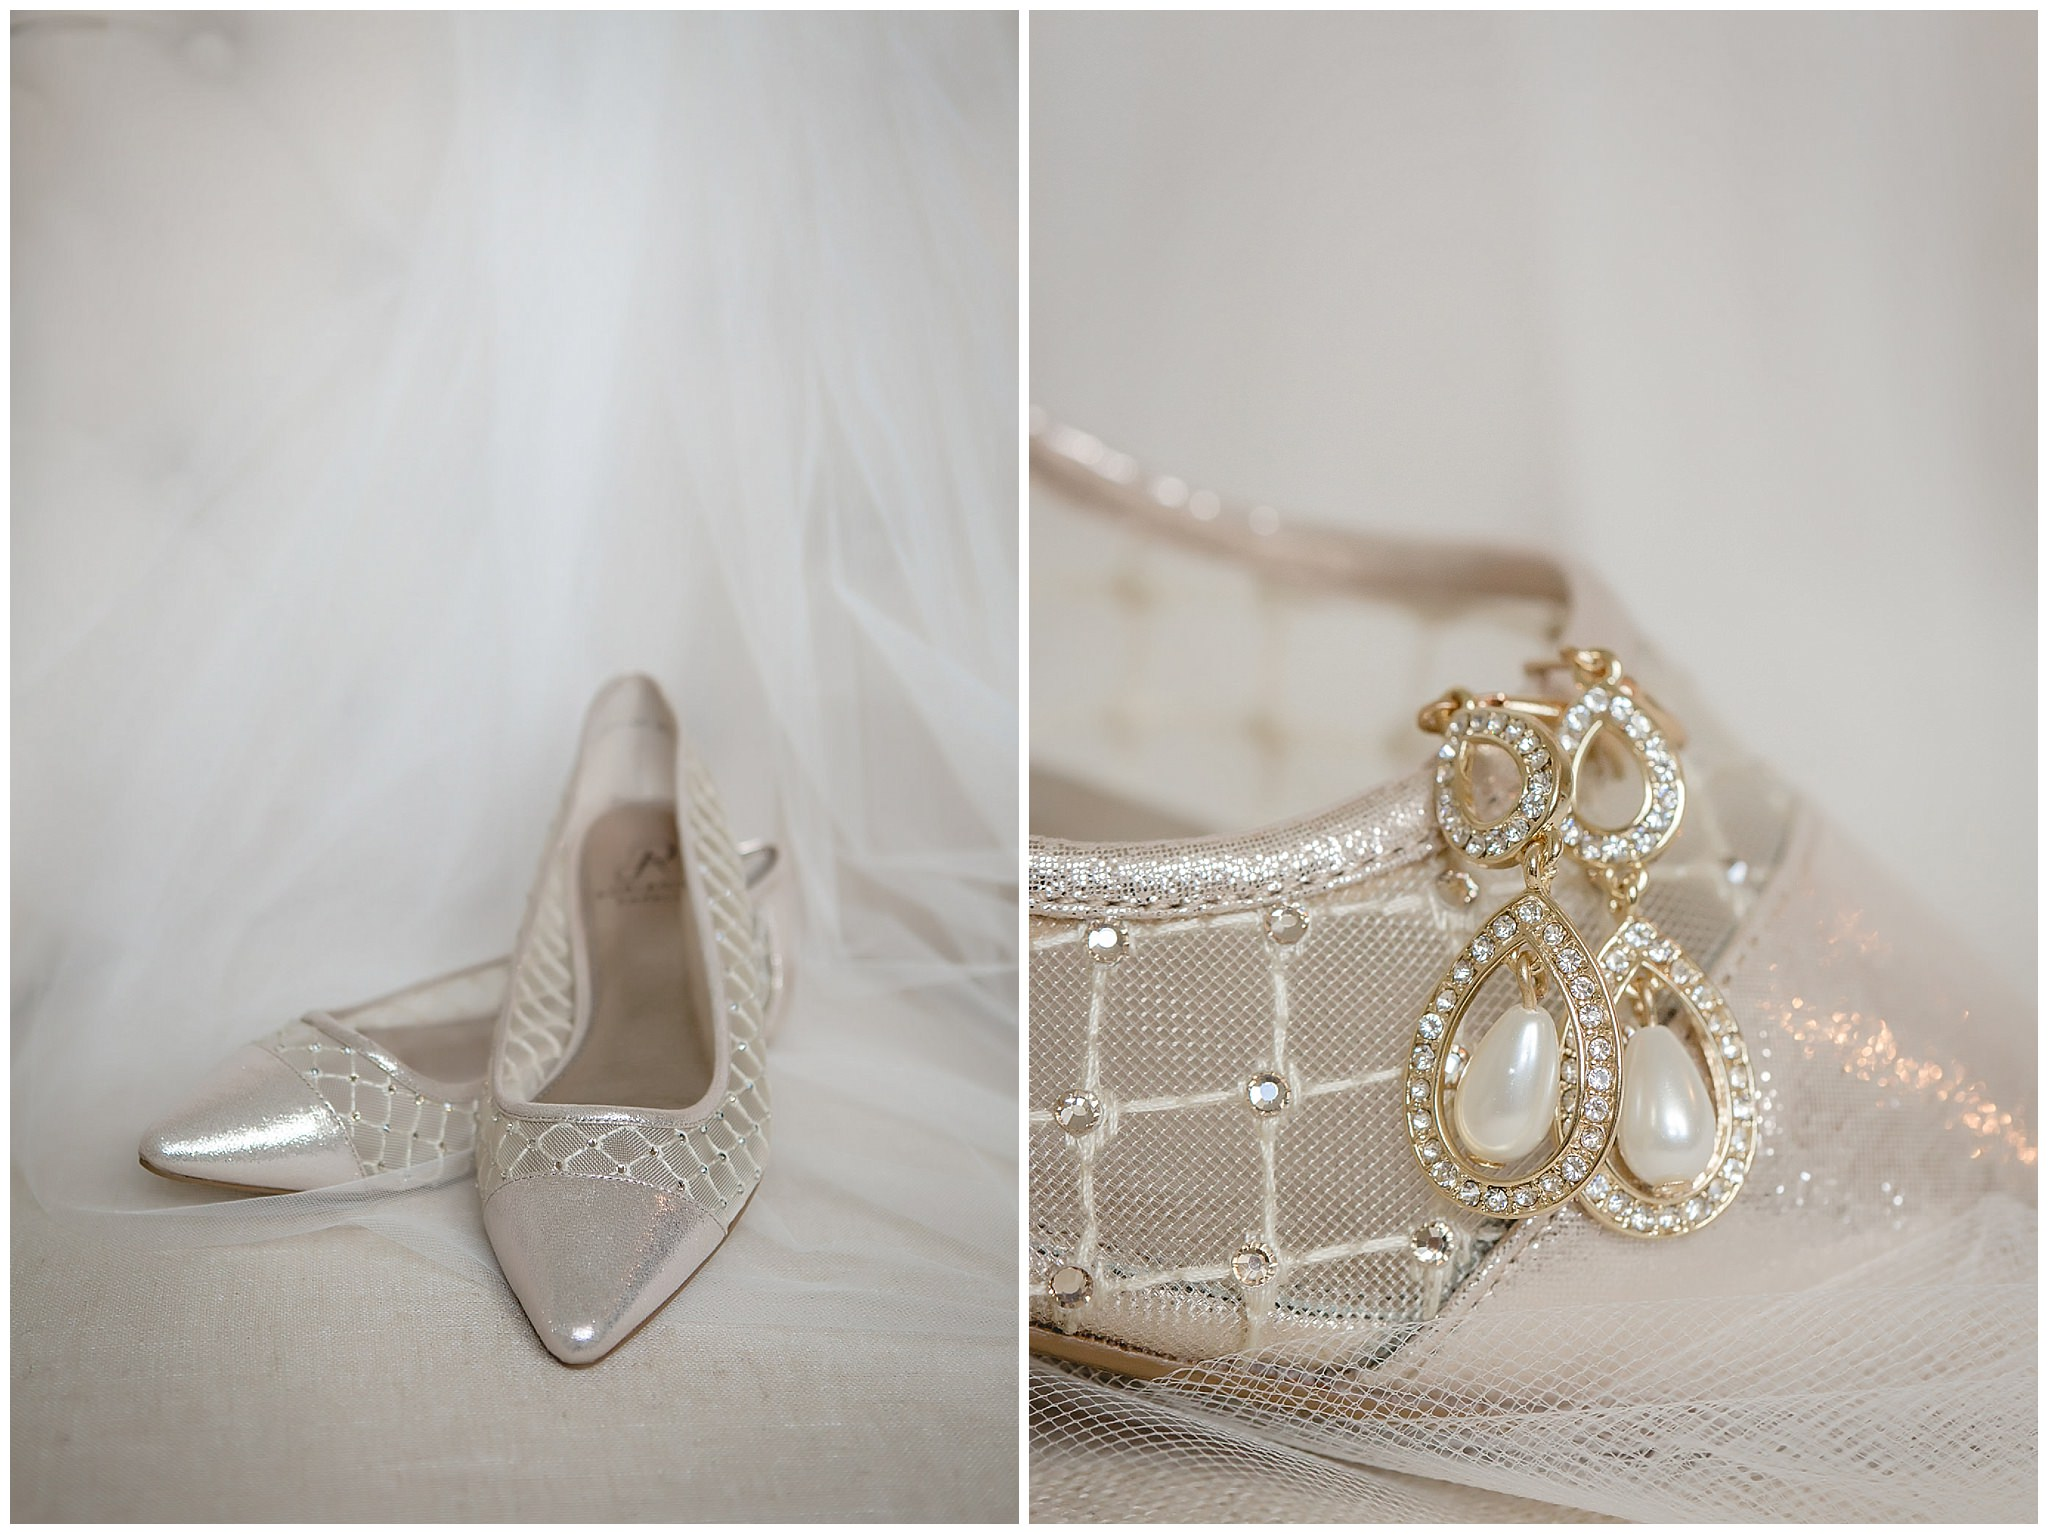 Bride's gold shoes and pearl earrings with her veil